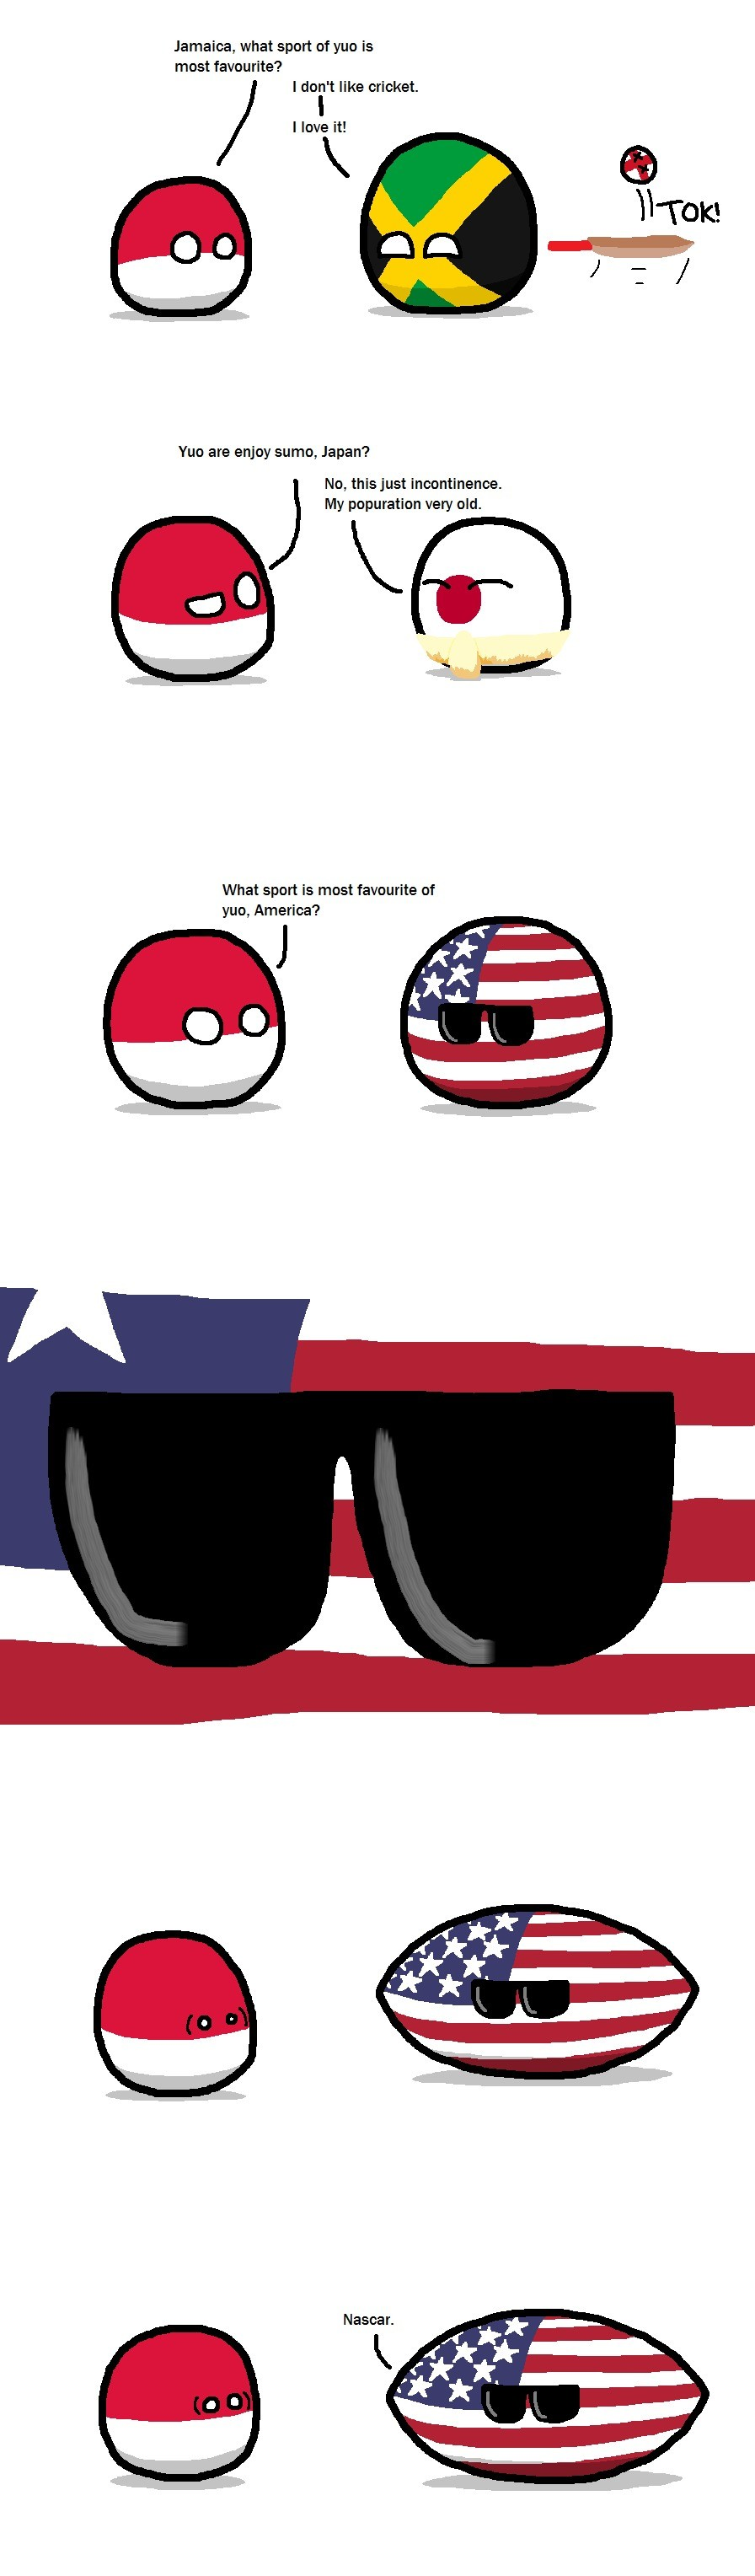 Favorite Sport. r/polandball (/u/brain4breakfast) . Jamaica, what sport of yuo is most favourite? I don' t like cricket. llove'! Tom Vuo are enjoy sumo, Japan?